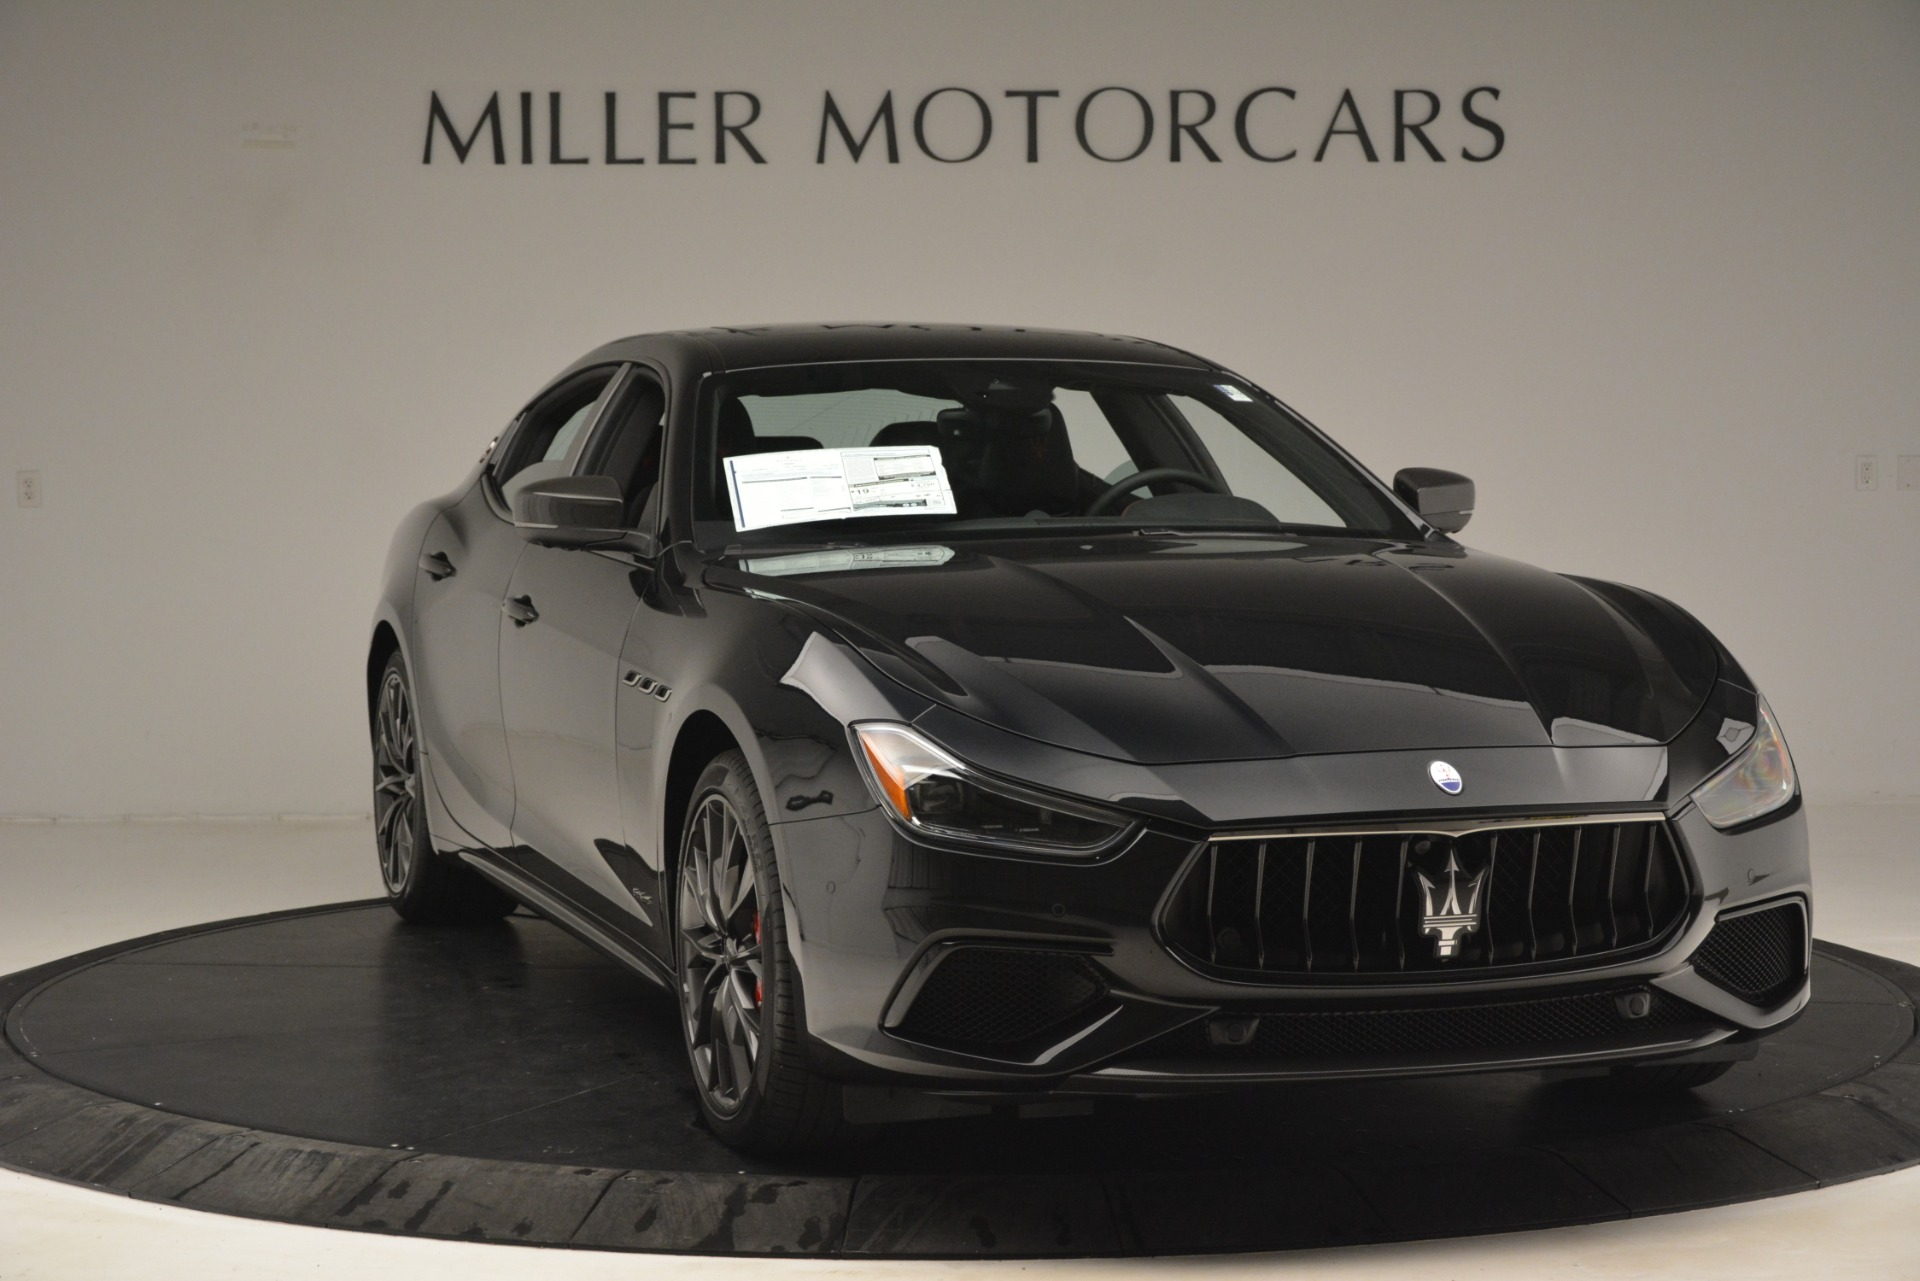 New 2019 Maserati Ghibli S Q4 GranSport For Sale In Westport, CT 2926_p11